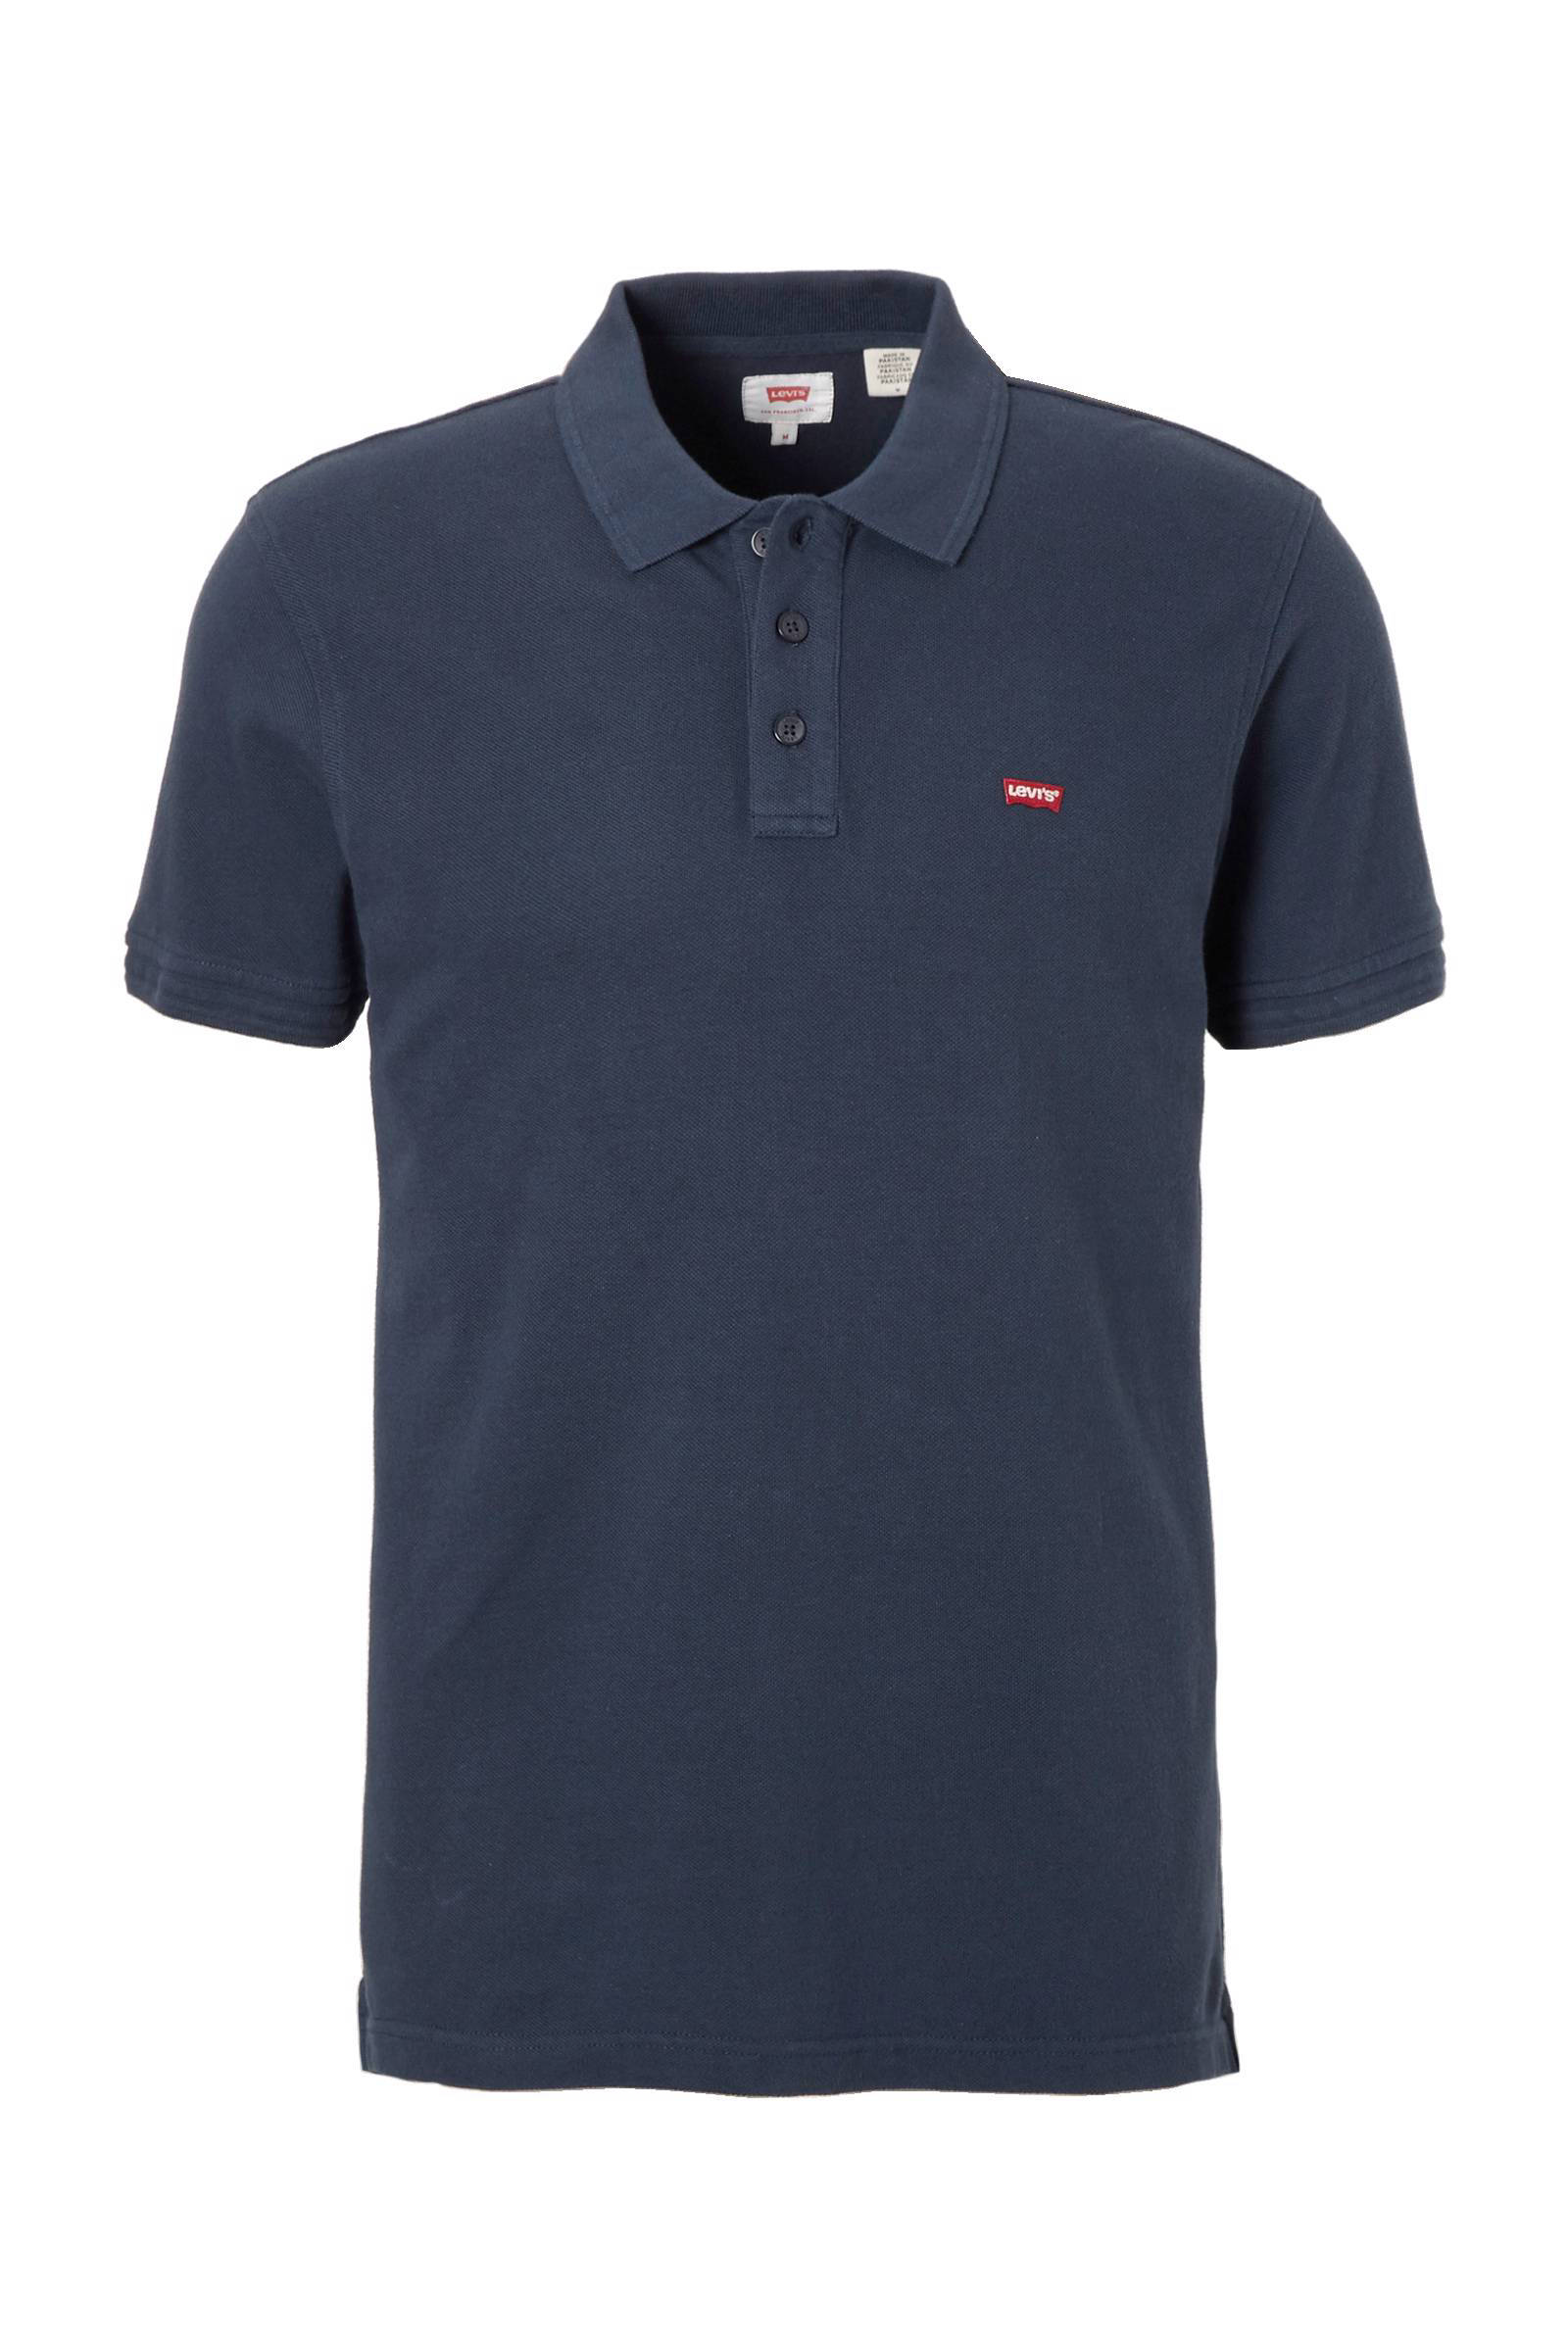 Levi's regular fit polo